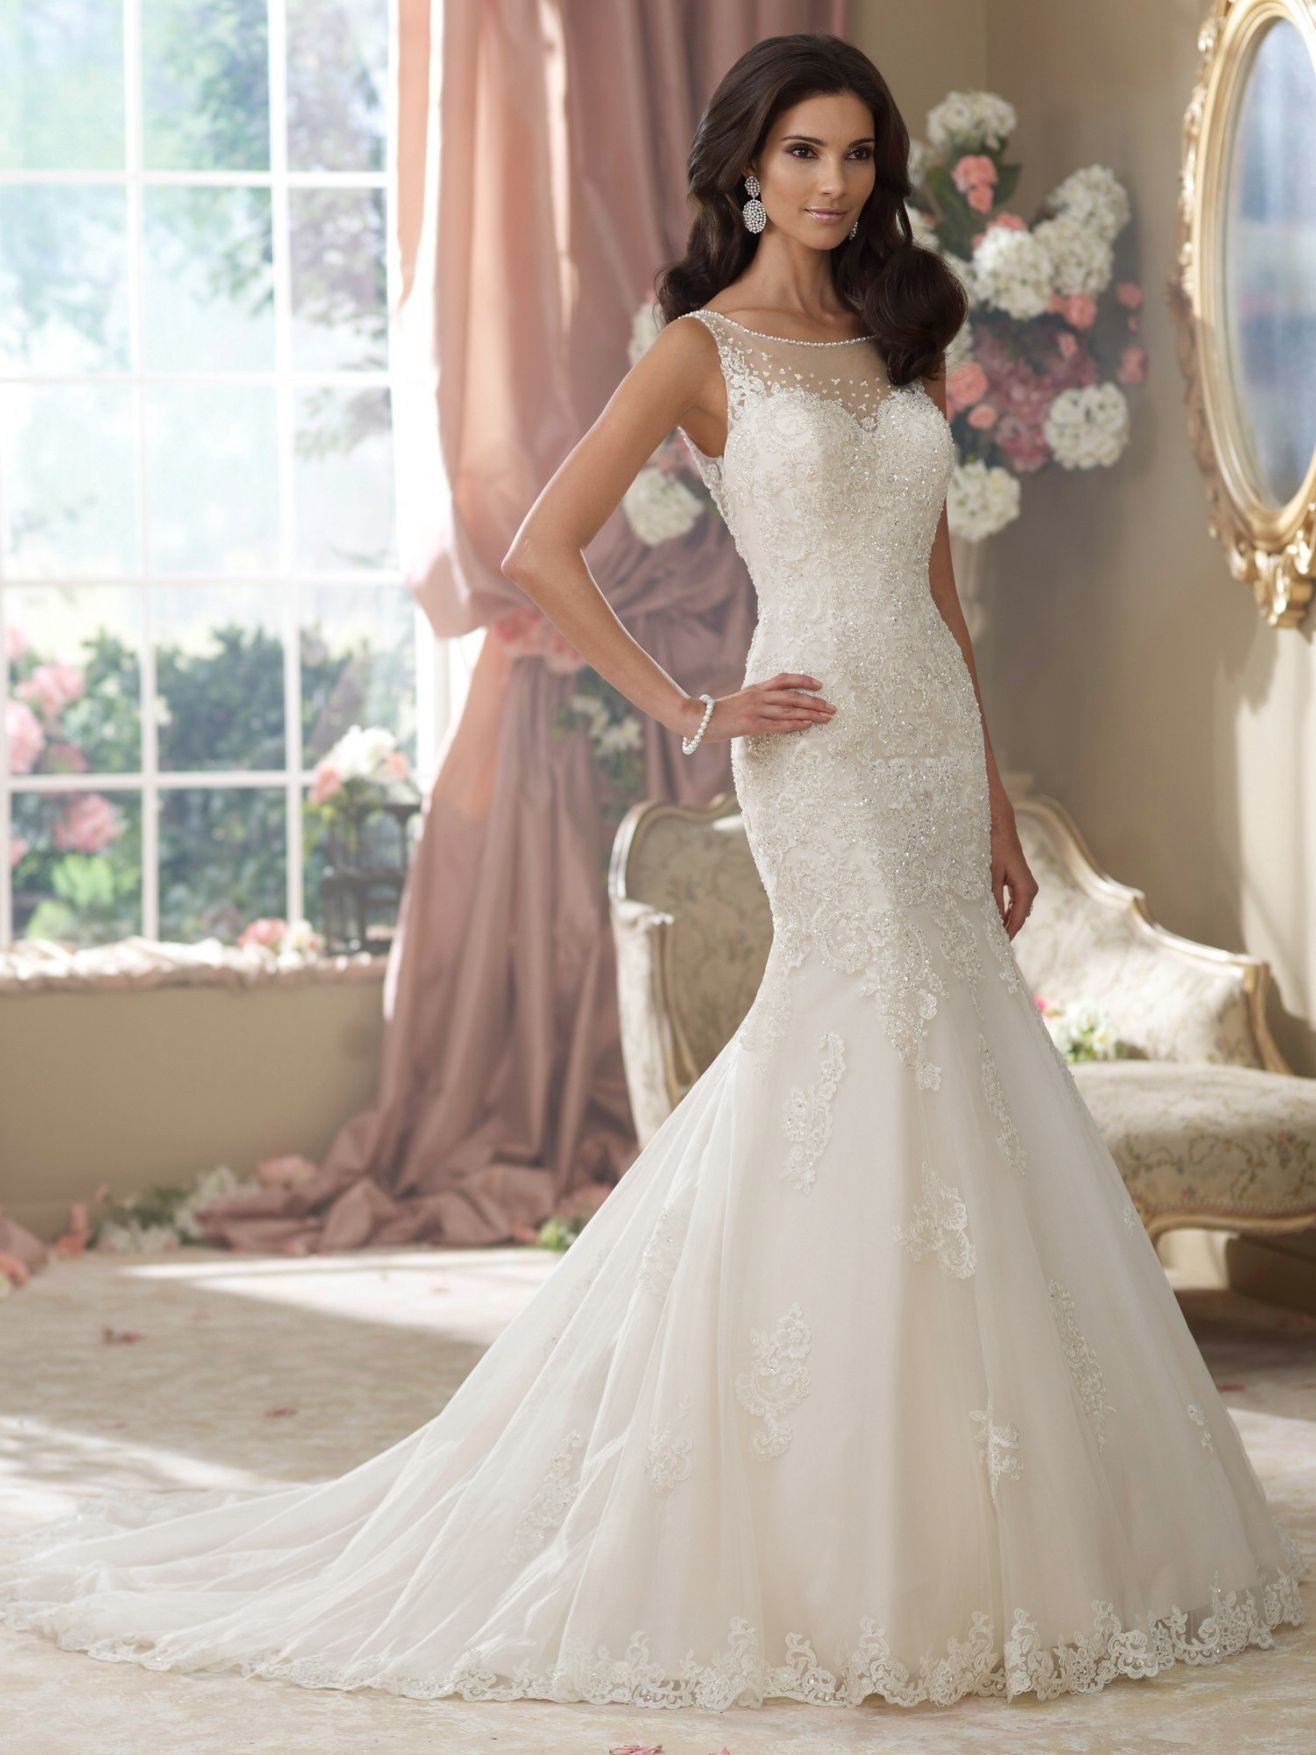 99 david tutera wedding dress prices wedding dresses for plus 99 david tutera wedding dress prices wedding dresses for plus size check more at junglespirit Images